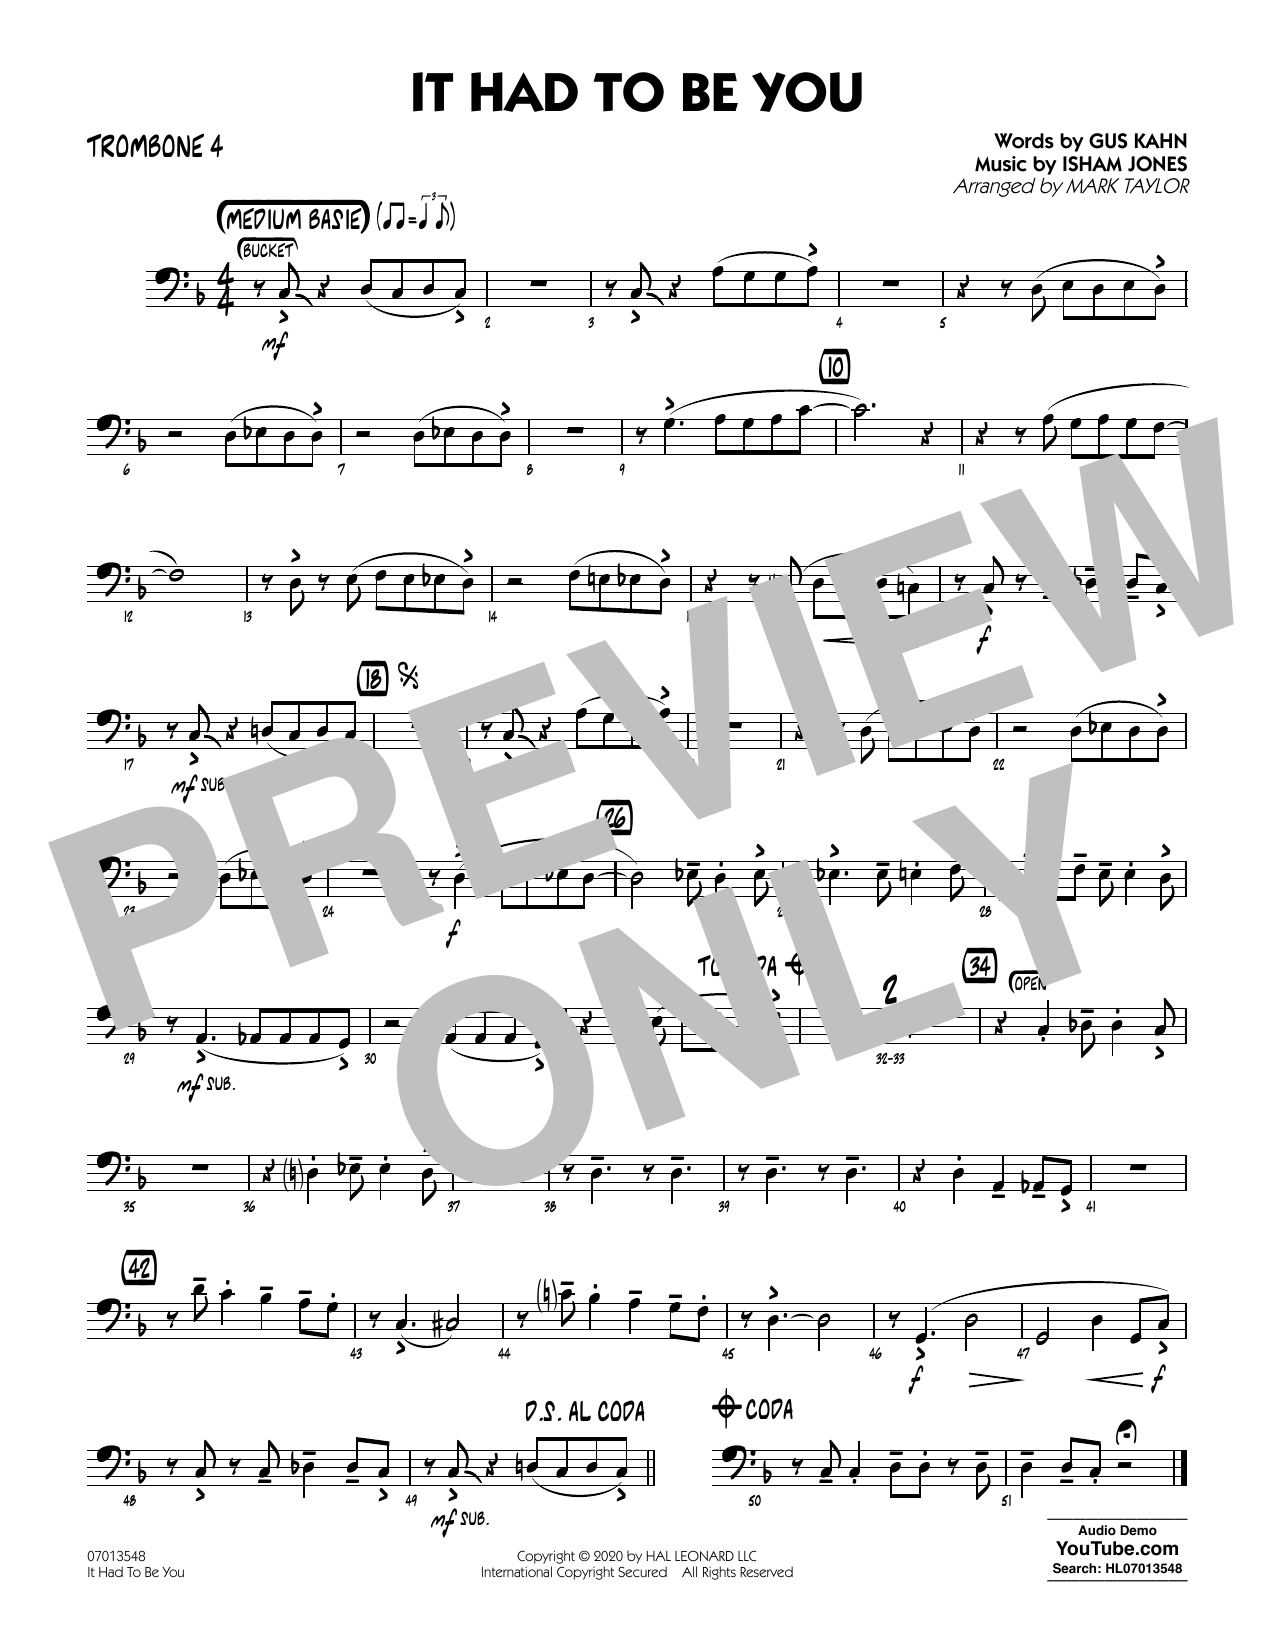 It Had to Be You (arr. Mark Taylor) - Trombone 4 Sheet Music